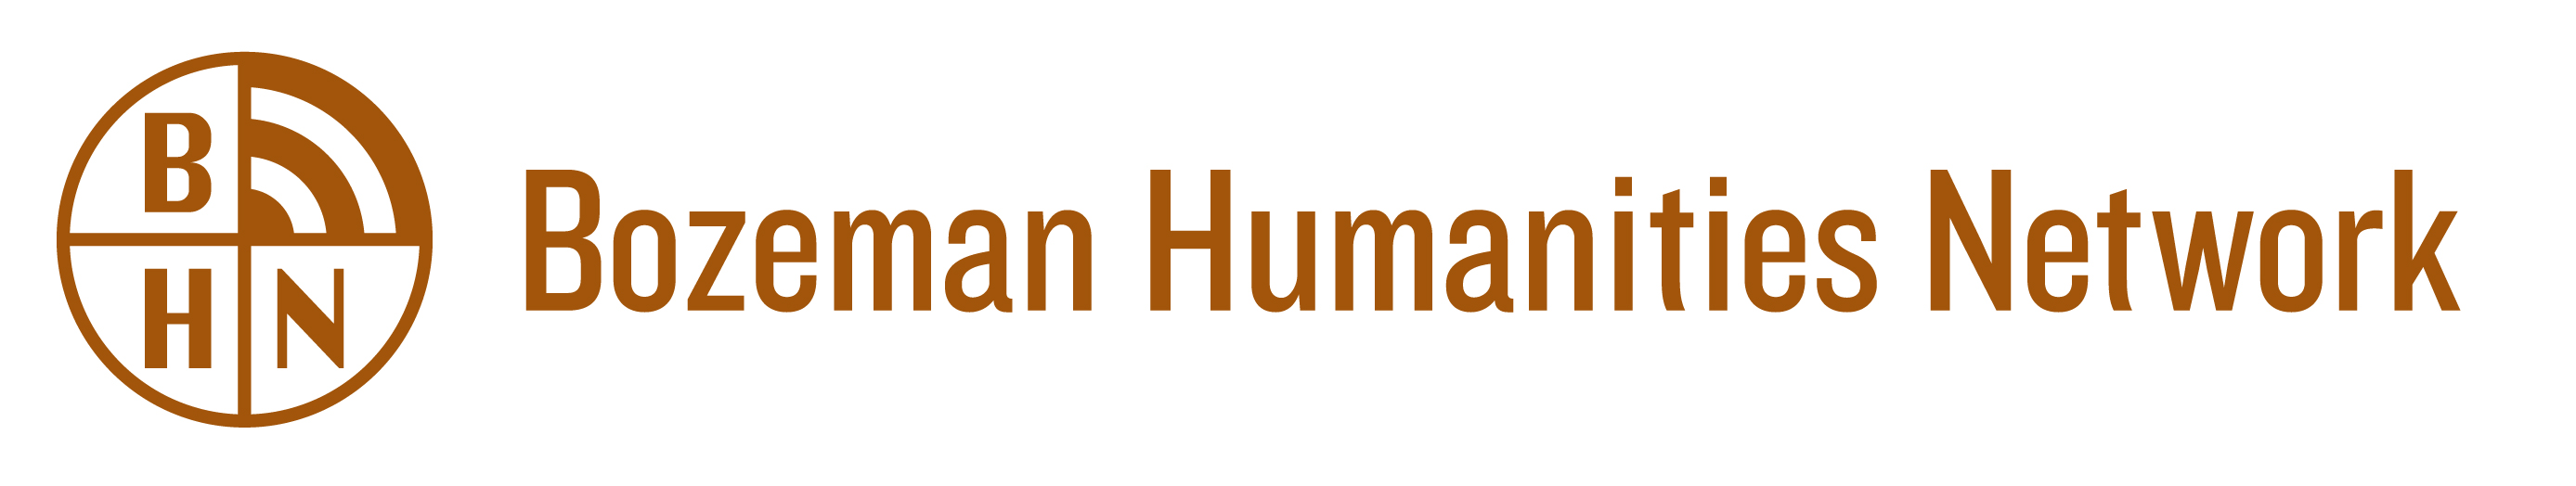 Bozeman Humanities Network